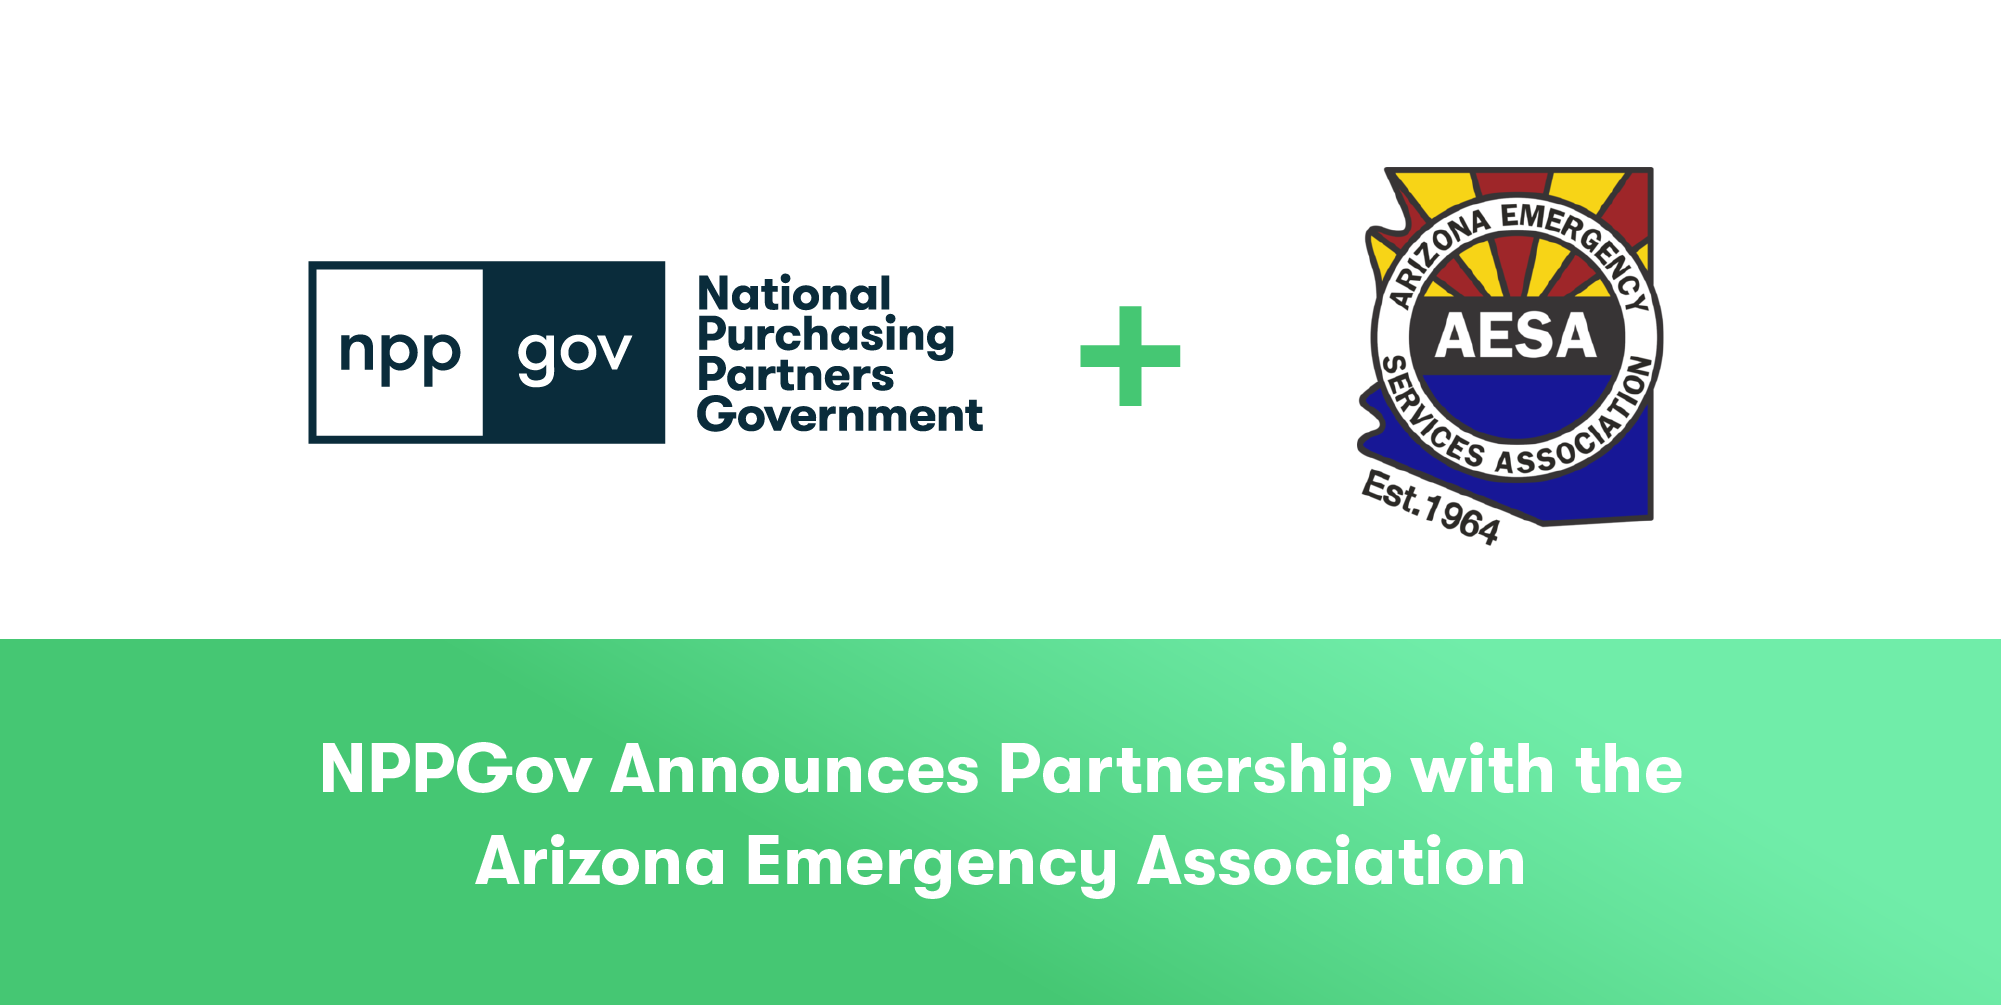 NPPGov Public Safety GPO Partners with the Arizona Emergency Services Association